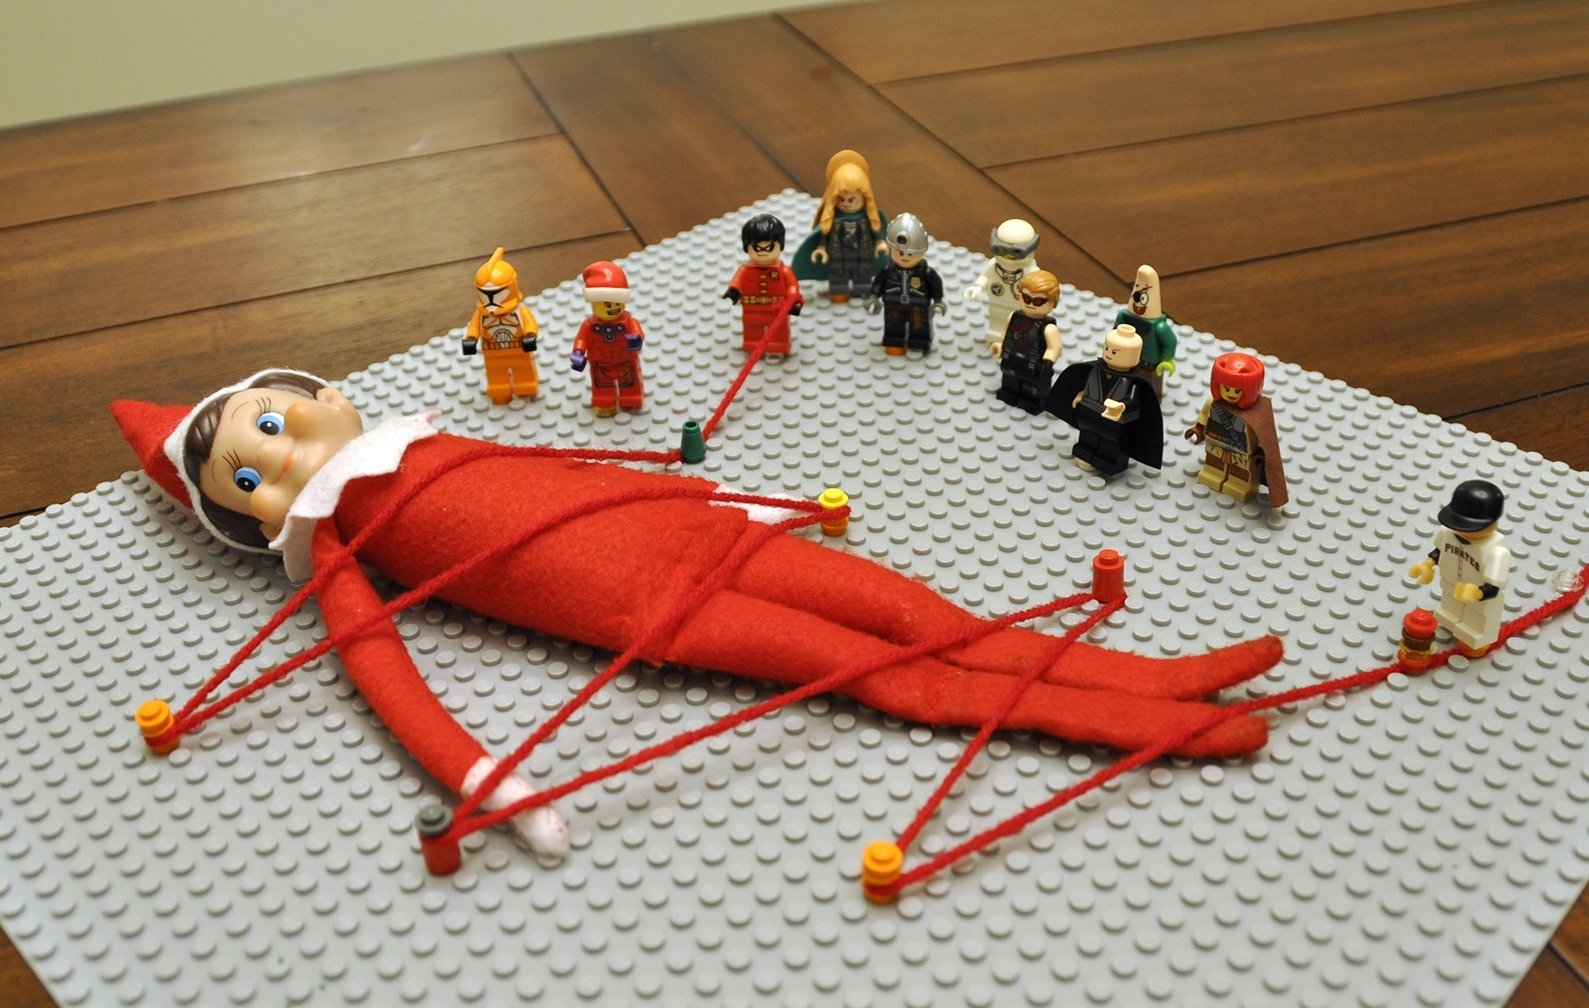 10 Fantastic Funny Ideas For Elf On The Shelf 12 new elf on the shelf ideas party delights blog 2021